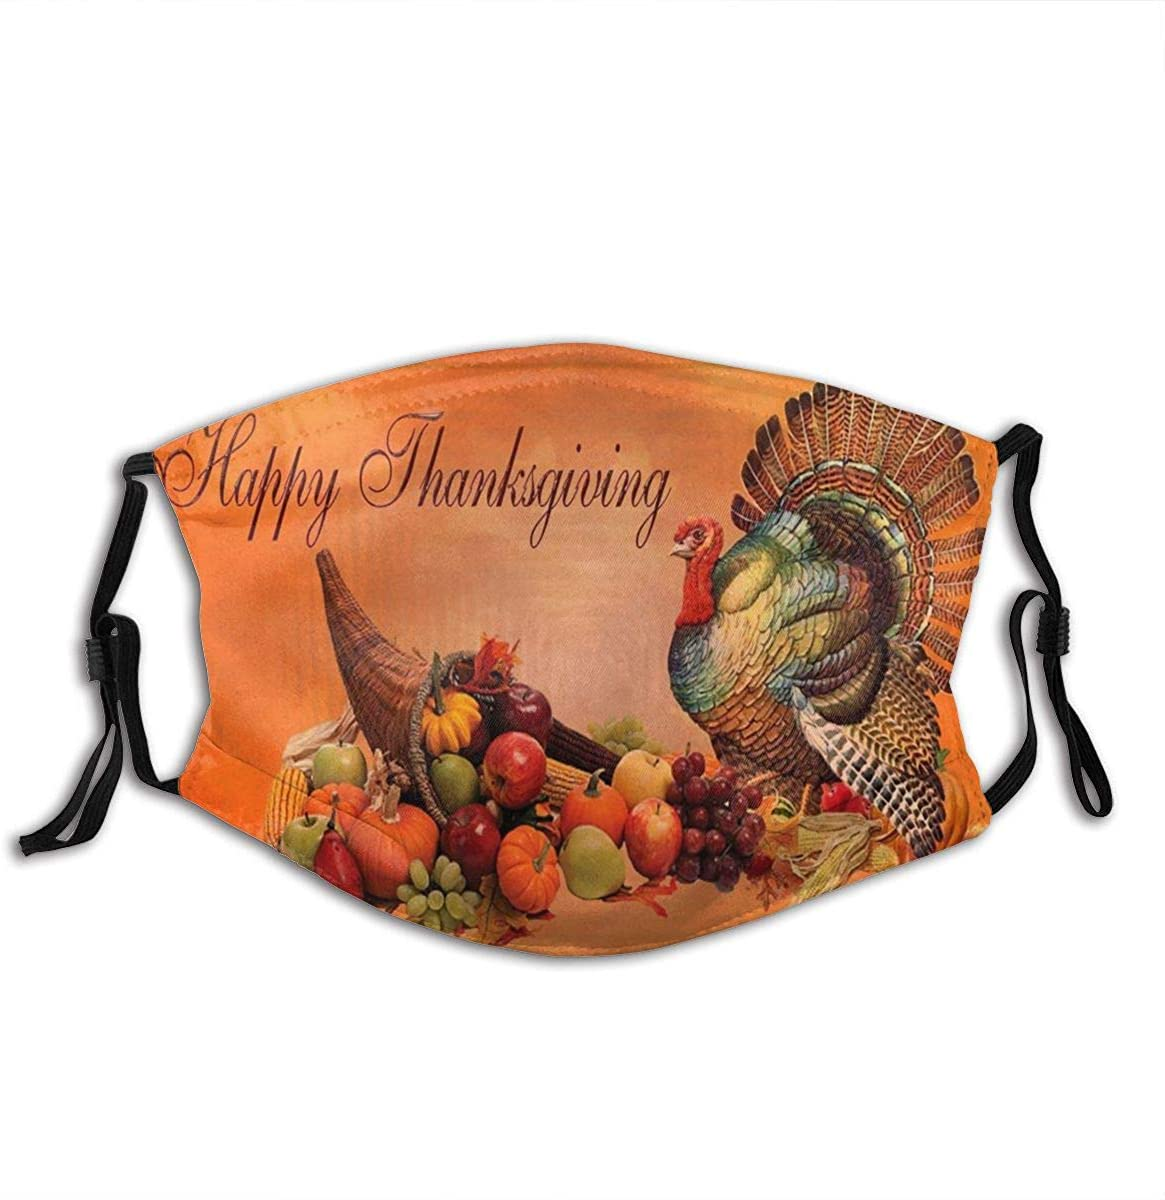 1-2PCS Thanksgiving Turkey Face Mask for Adults, Washable Face Scarf Reusable with 2-6 Filter for Men Women